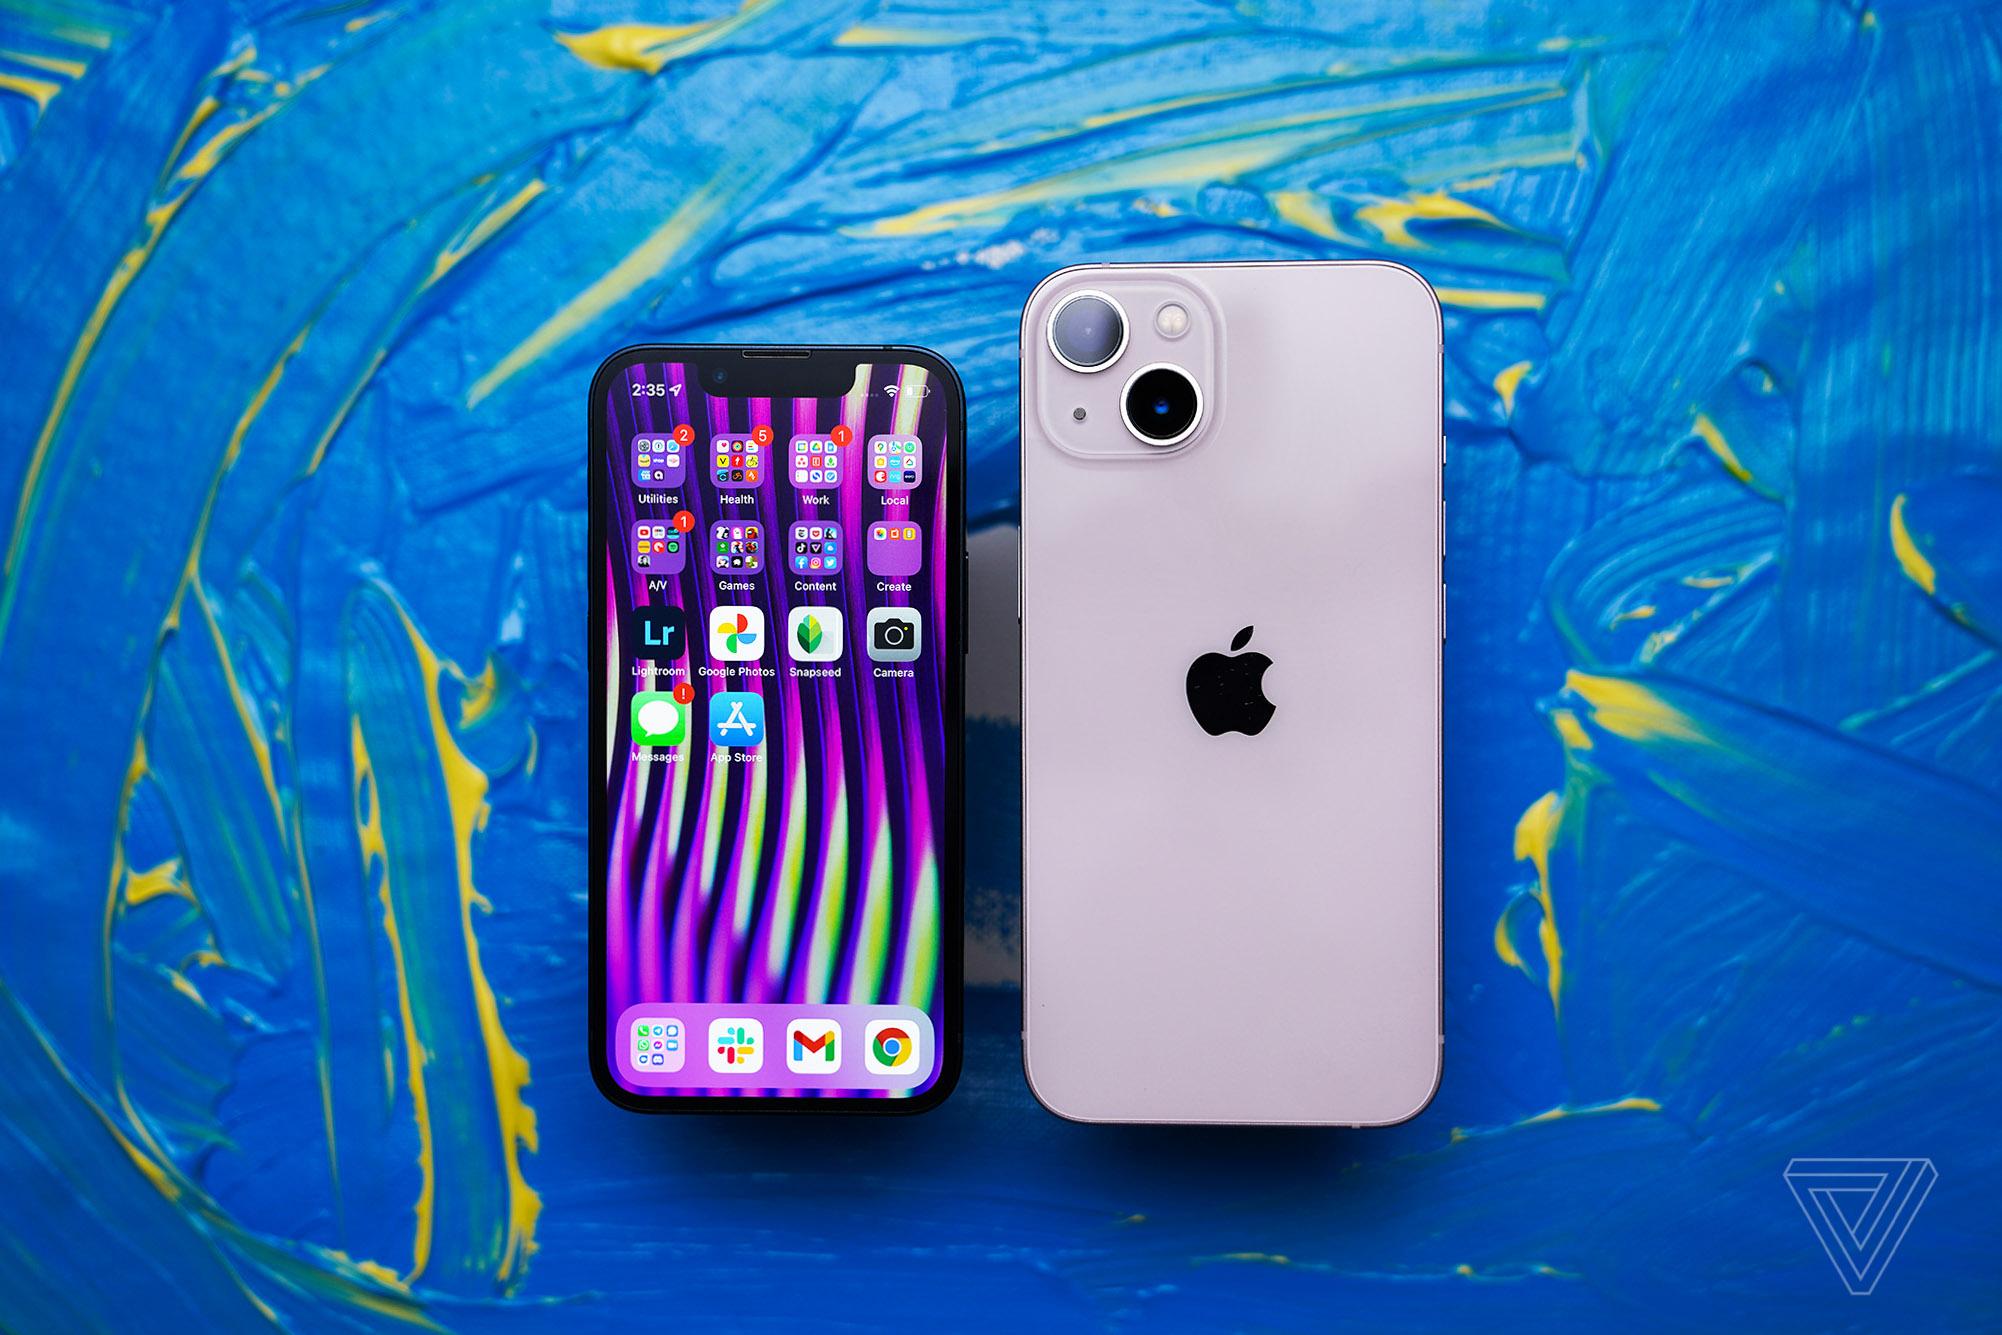 The iPhone 13 Mini and iPhone 13